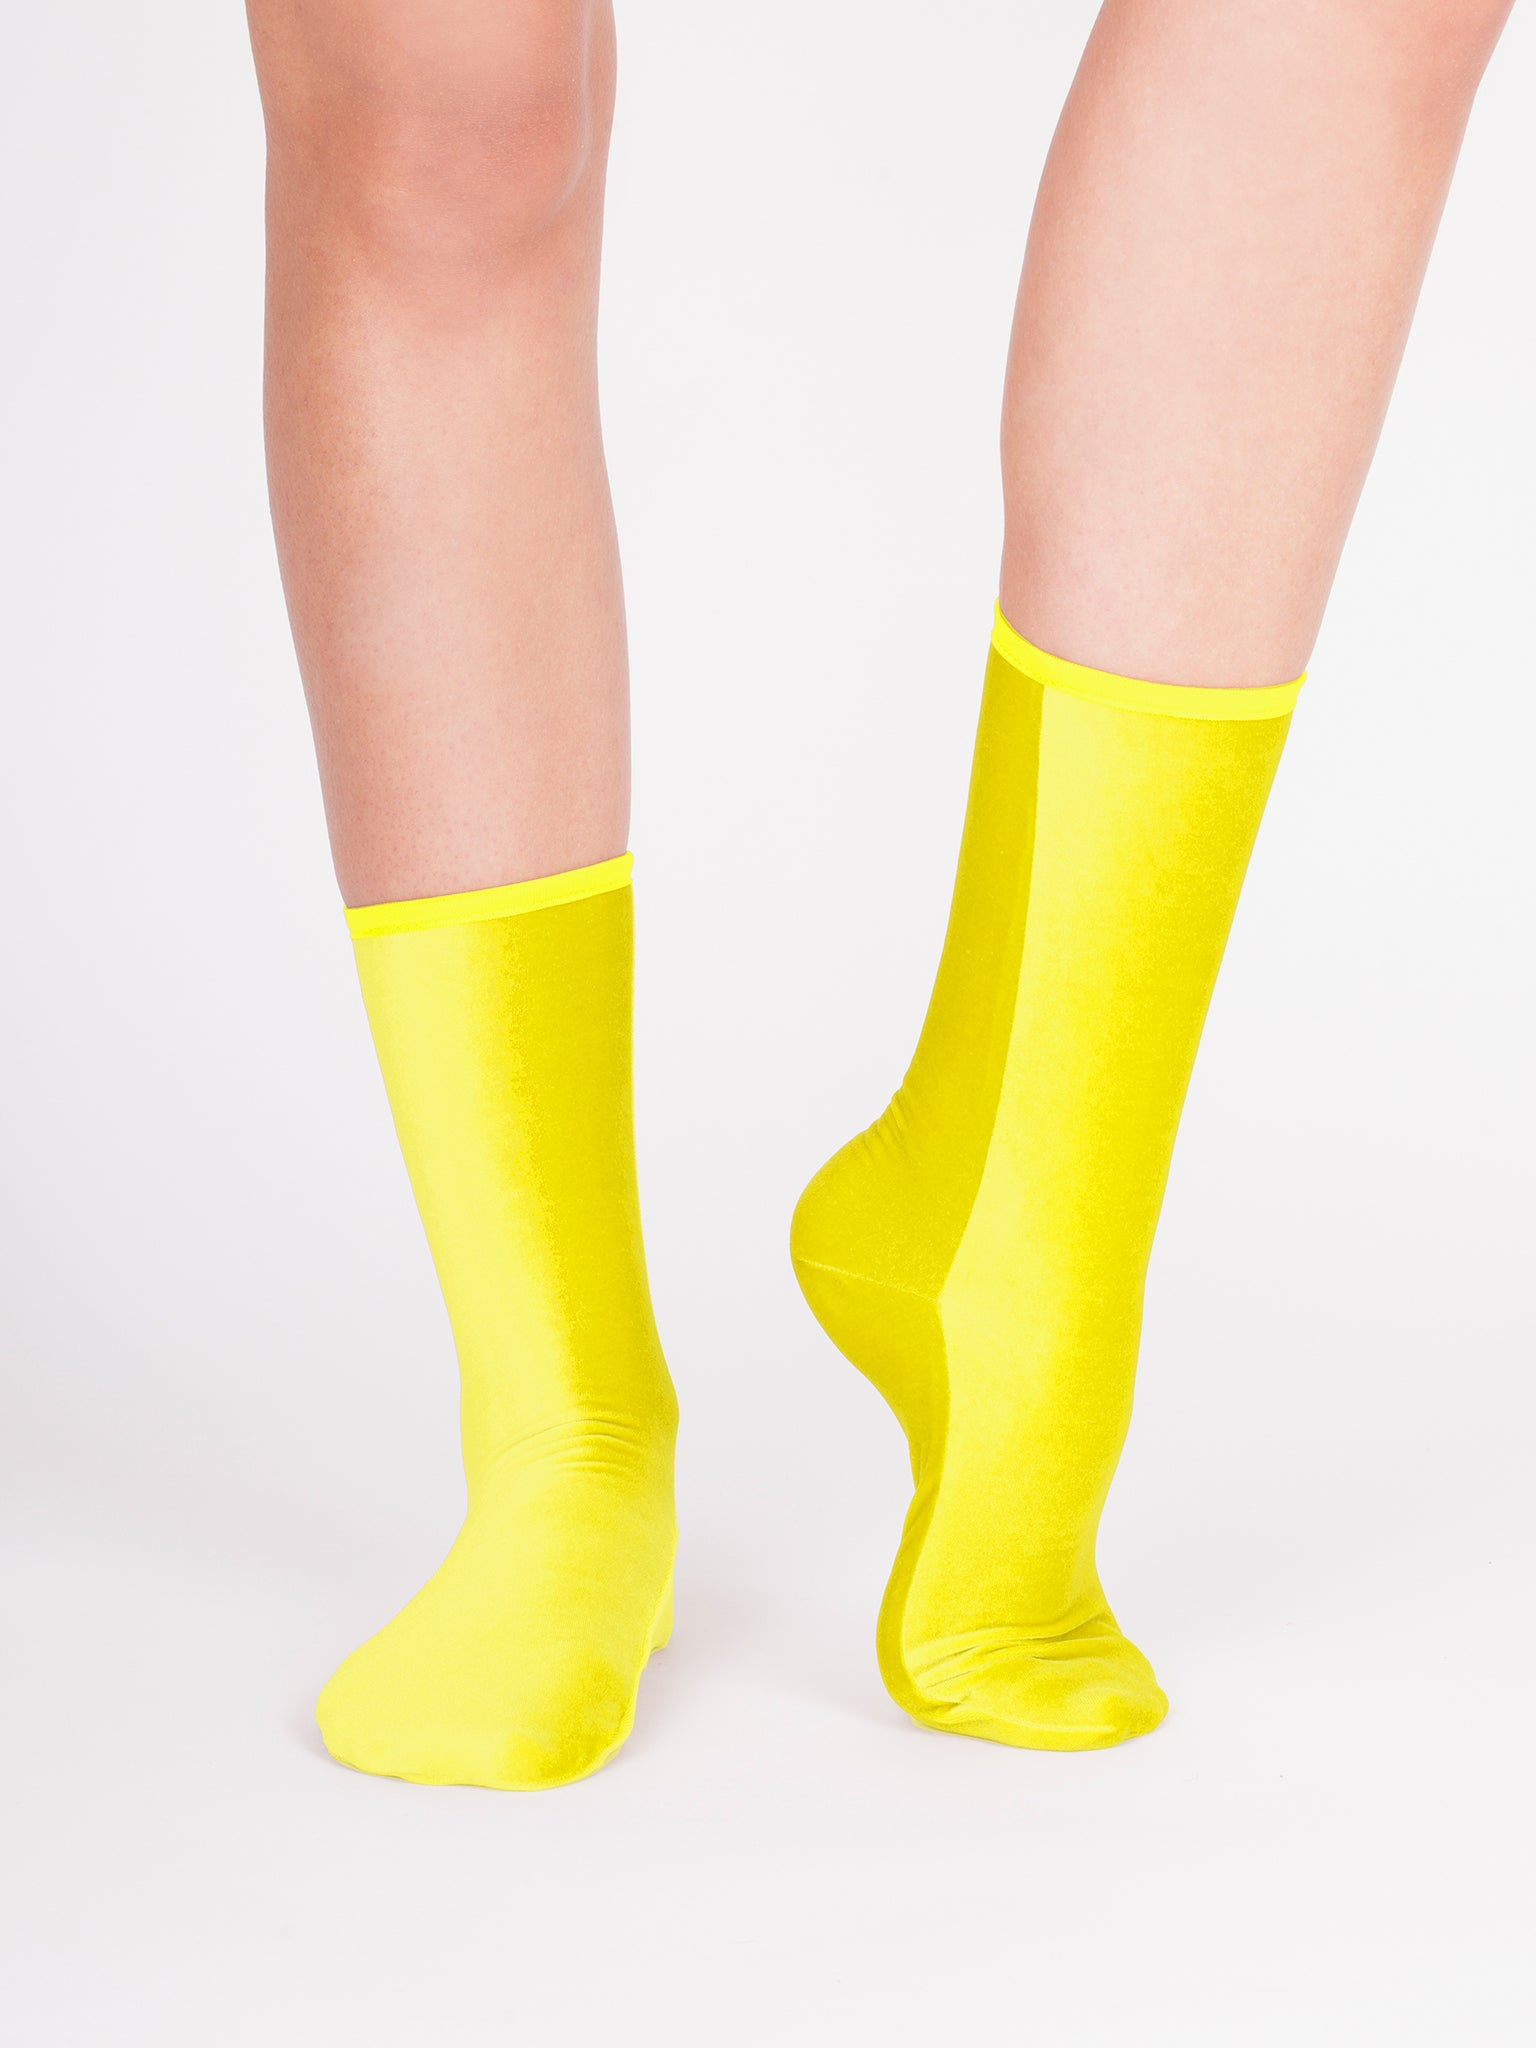 Velvet ankle socks, limoncello